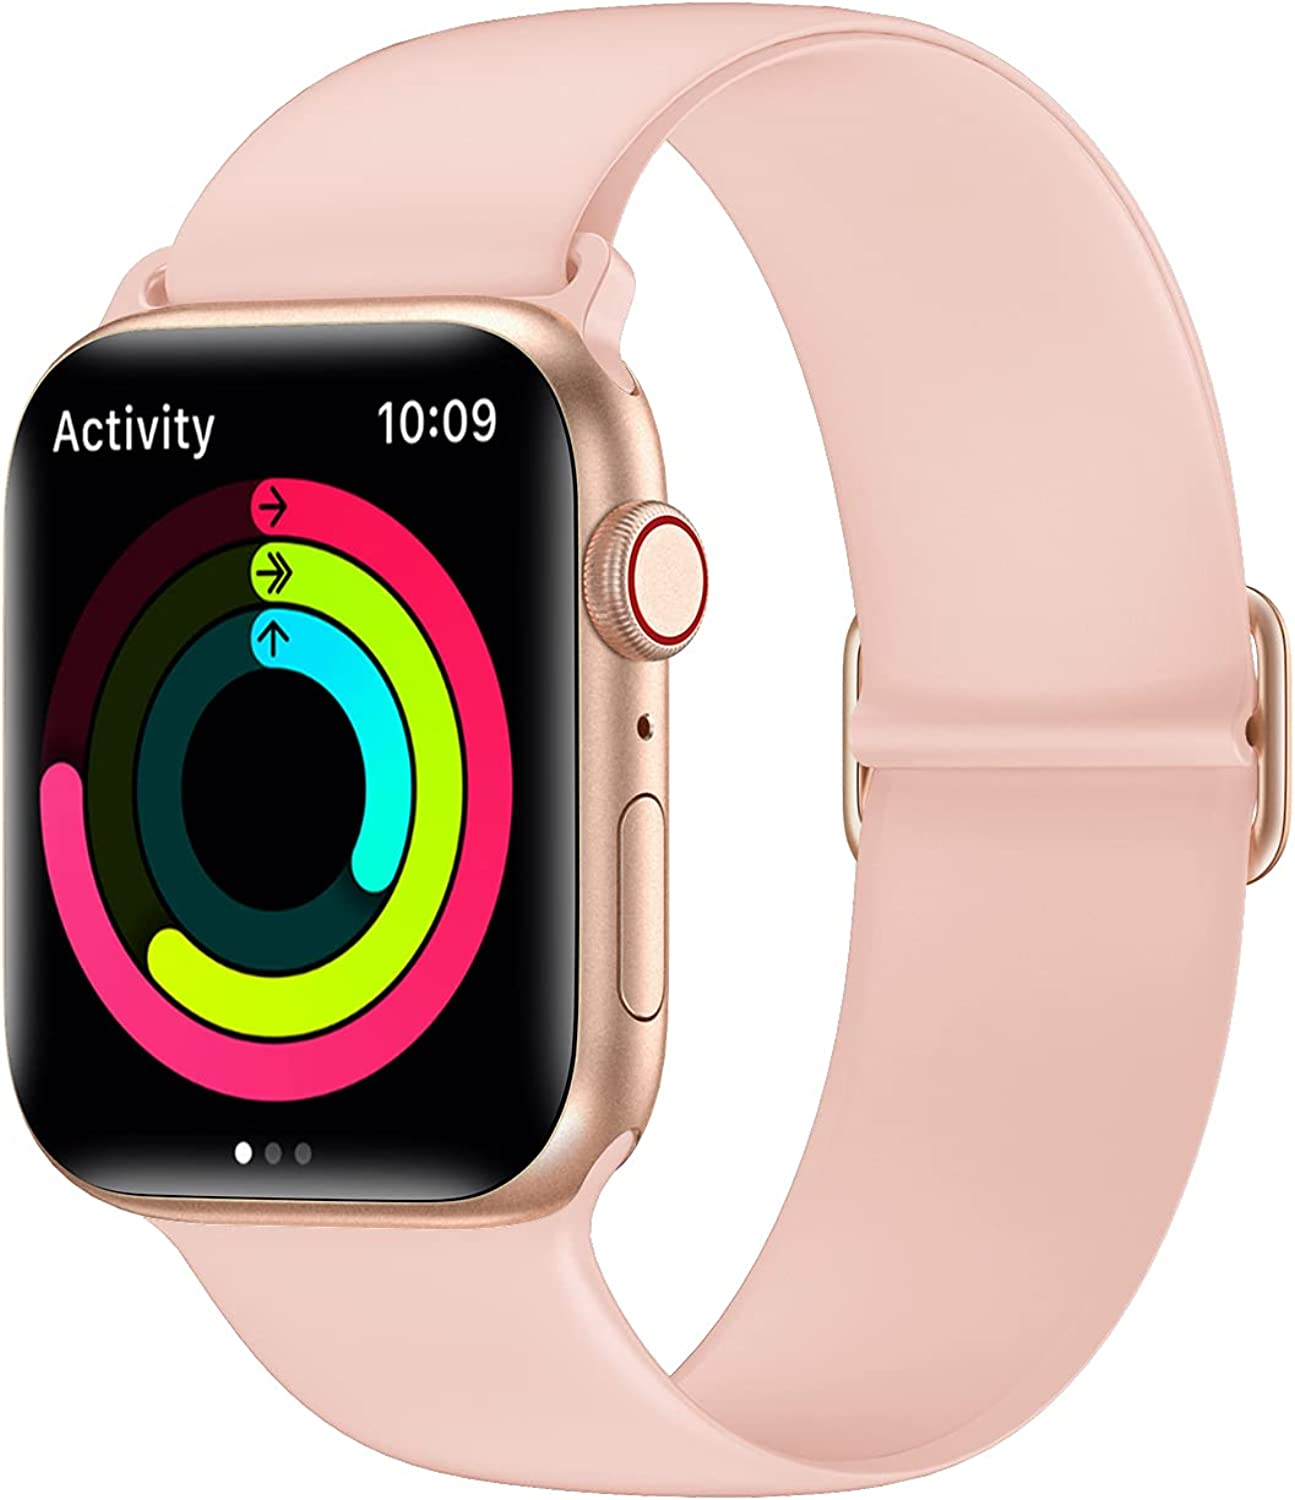 AMANECER Liquid Silicone Watch Bands Compatible with Apple Watch Series 6/5/4/3/2/1 SE, Adjustable Stretchable Sport Loop Bands for iWatch Women Men (Pink Sand, 42MM/44MM)